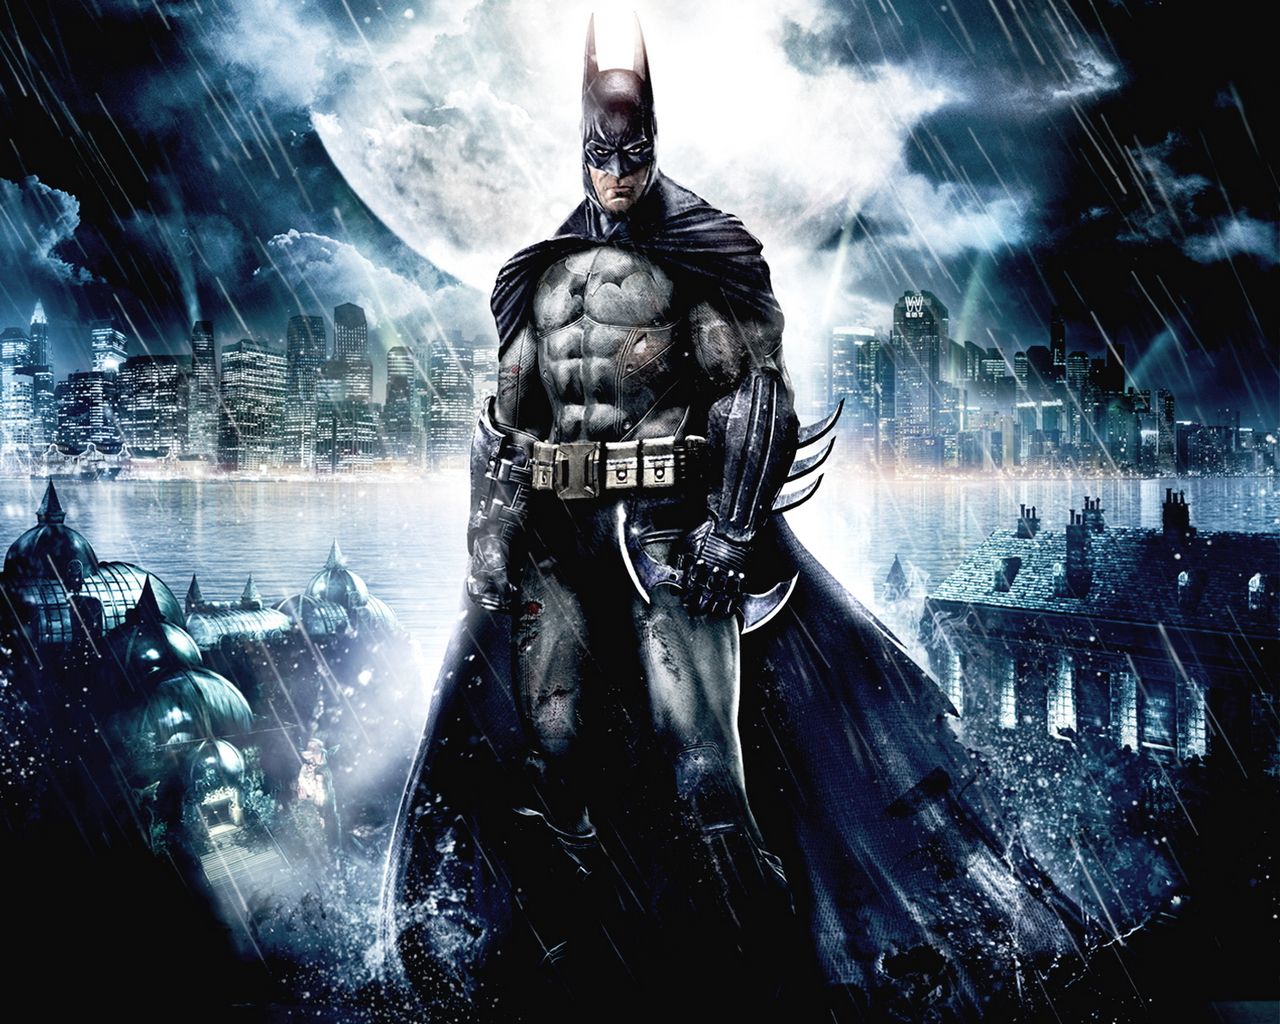 Batman Arkham Asylum Wallpaper 1 Batman Arkham Asylum Wallpaper 1jpg 1280x1024